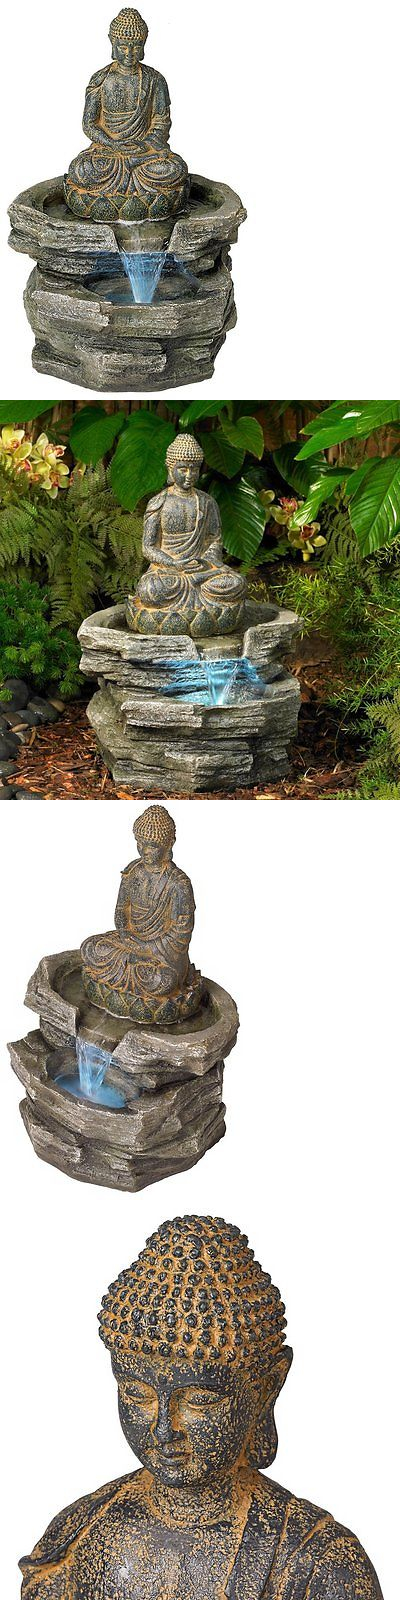 Indoor fountains 20569 sitting buddha 21 high led water fountain indoor fountains 20569 sitting buddha 21 high led water fountain buy it now workwithnaturefo